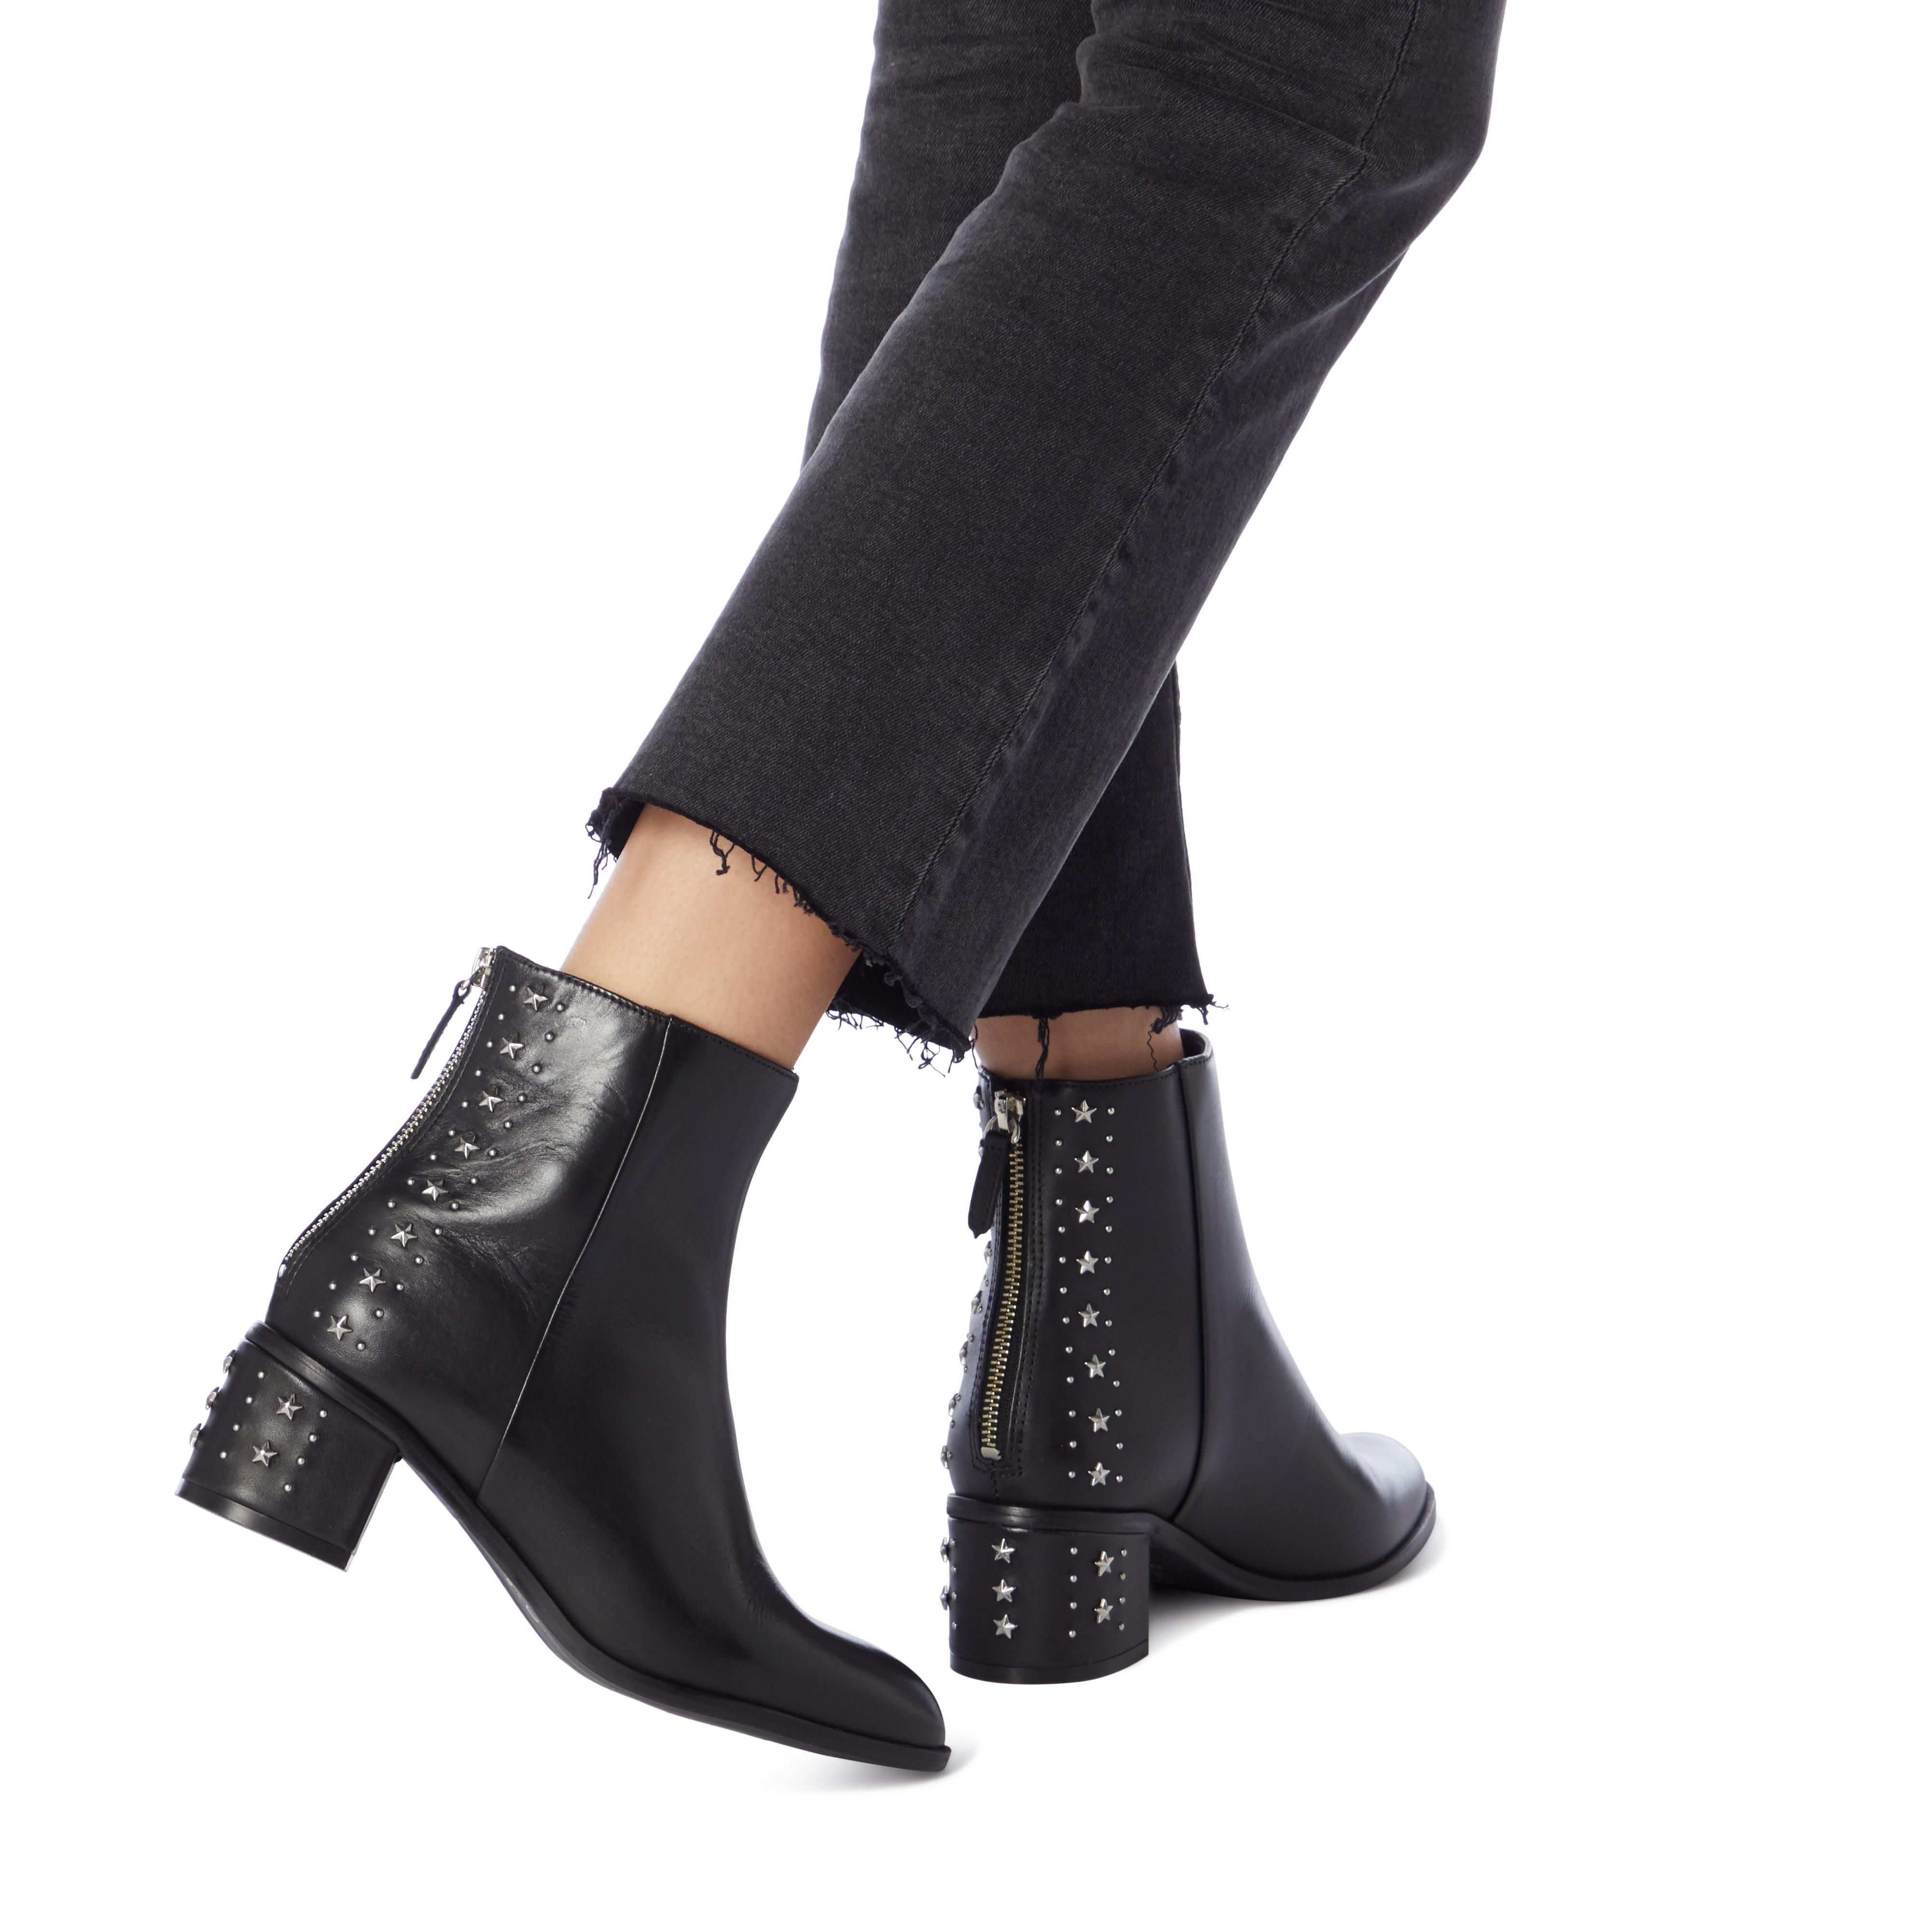 Dune Ladies PINO Embellished Block Heel Ankle Boots